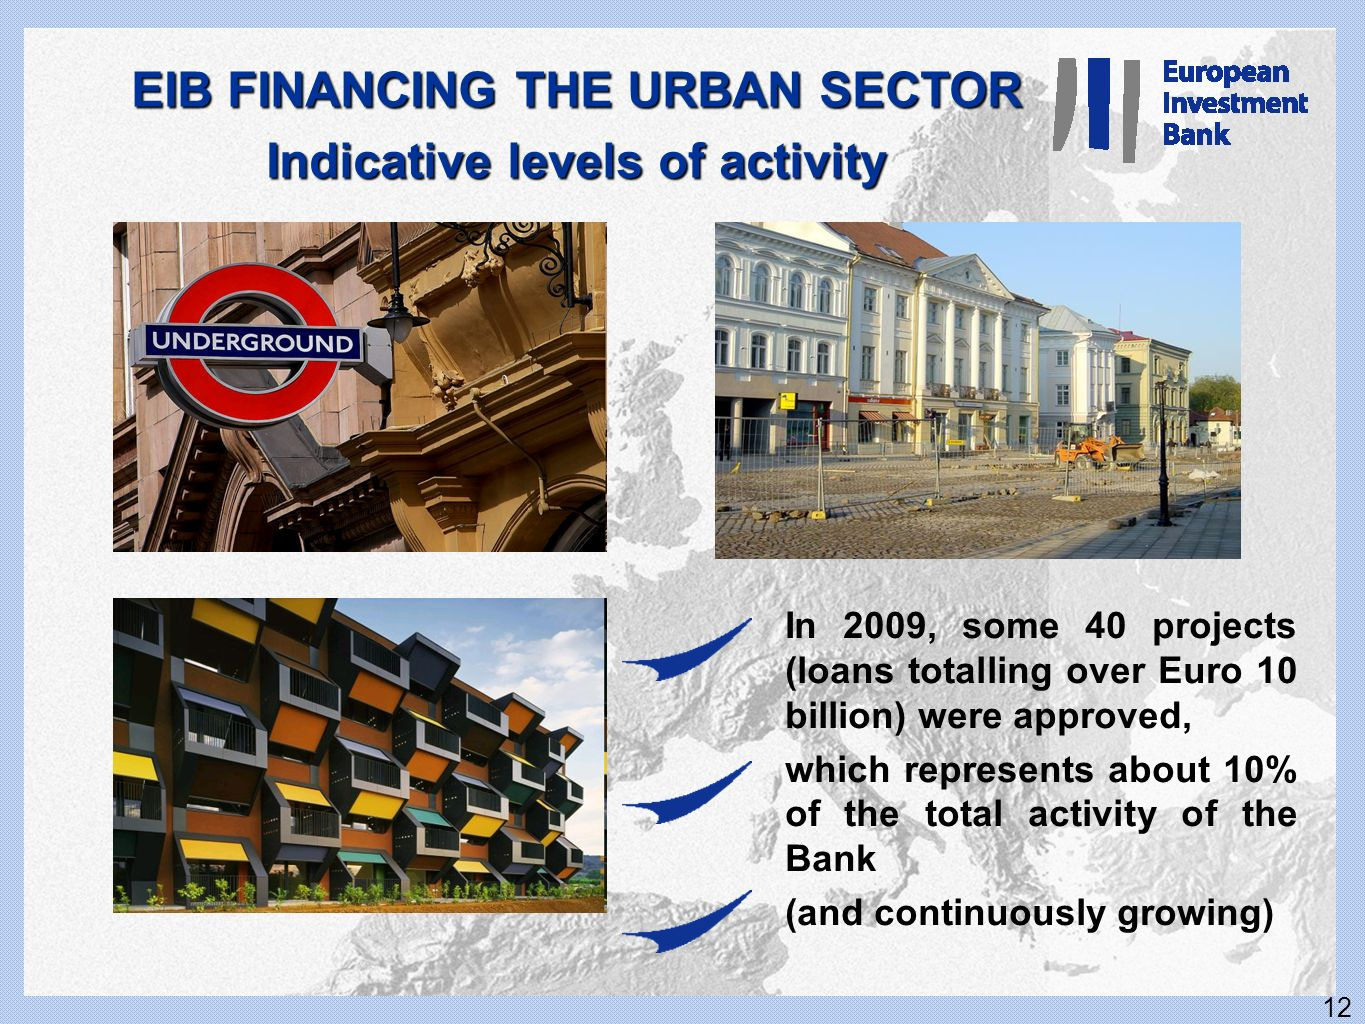 12 EIB FINANCING THE URBAN SECTOR Indicative levels of activity In 2009, some 40 projects (loans totalling over Euro 10 billion) were approved, which